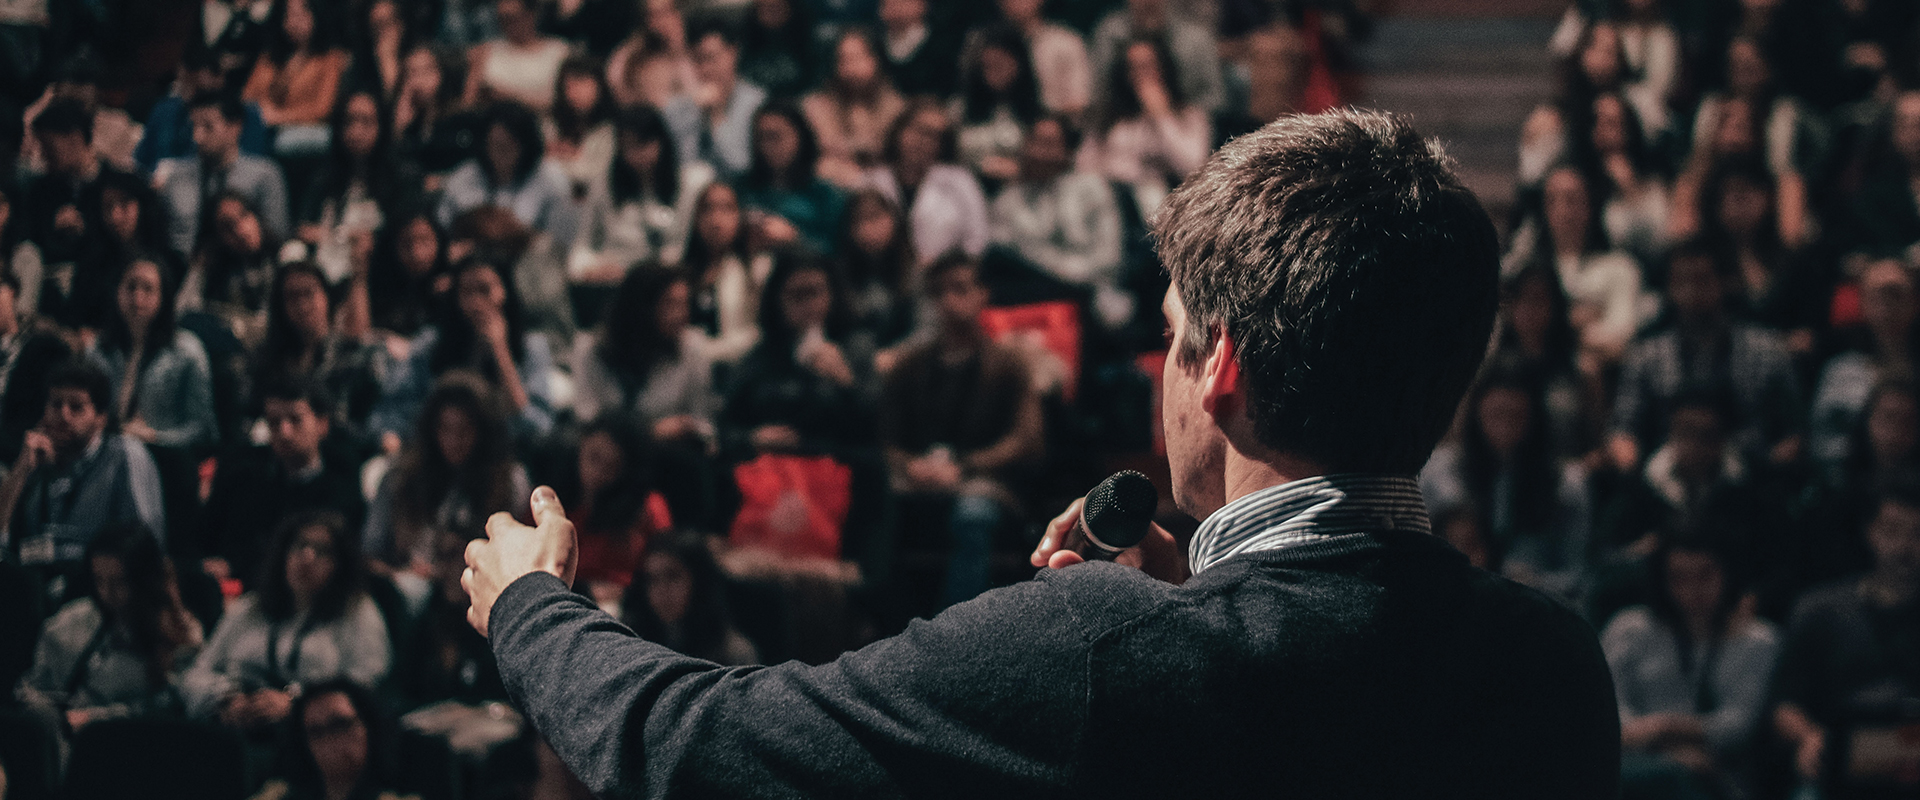 Photo of a man giving a speech in front of an audience